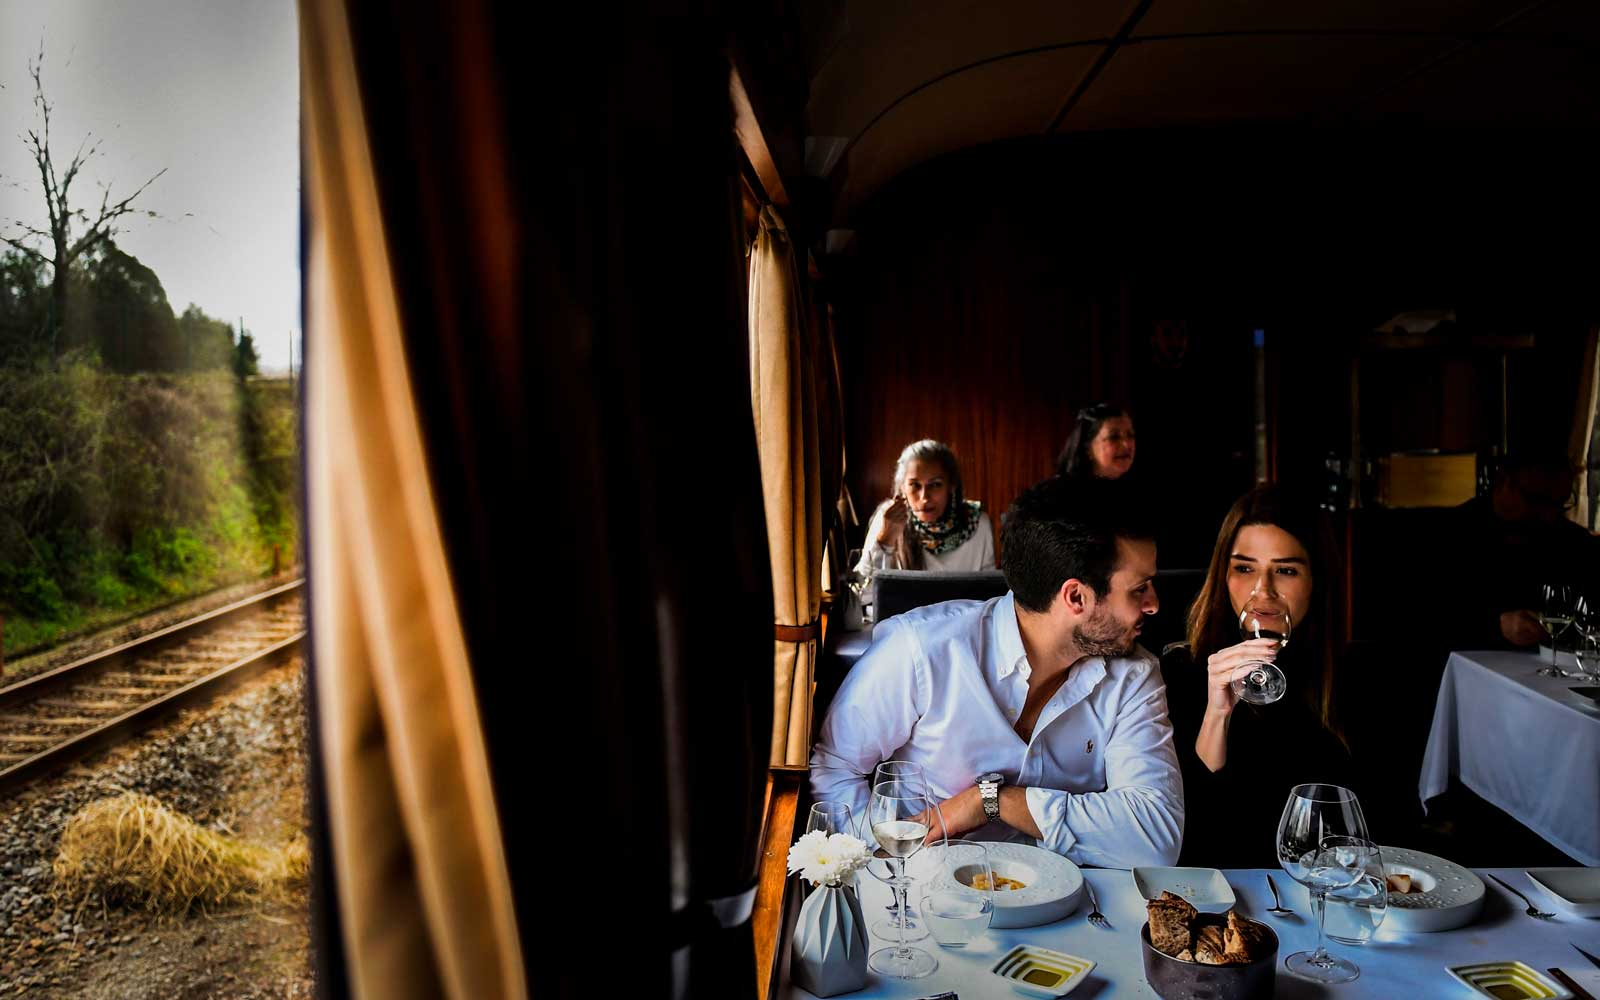 A couple have a meal aboard the Presidential Train during its trip to Douro, north of Portugal, on April 8, 2018.